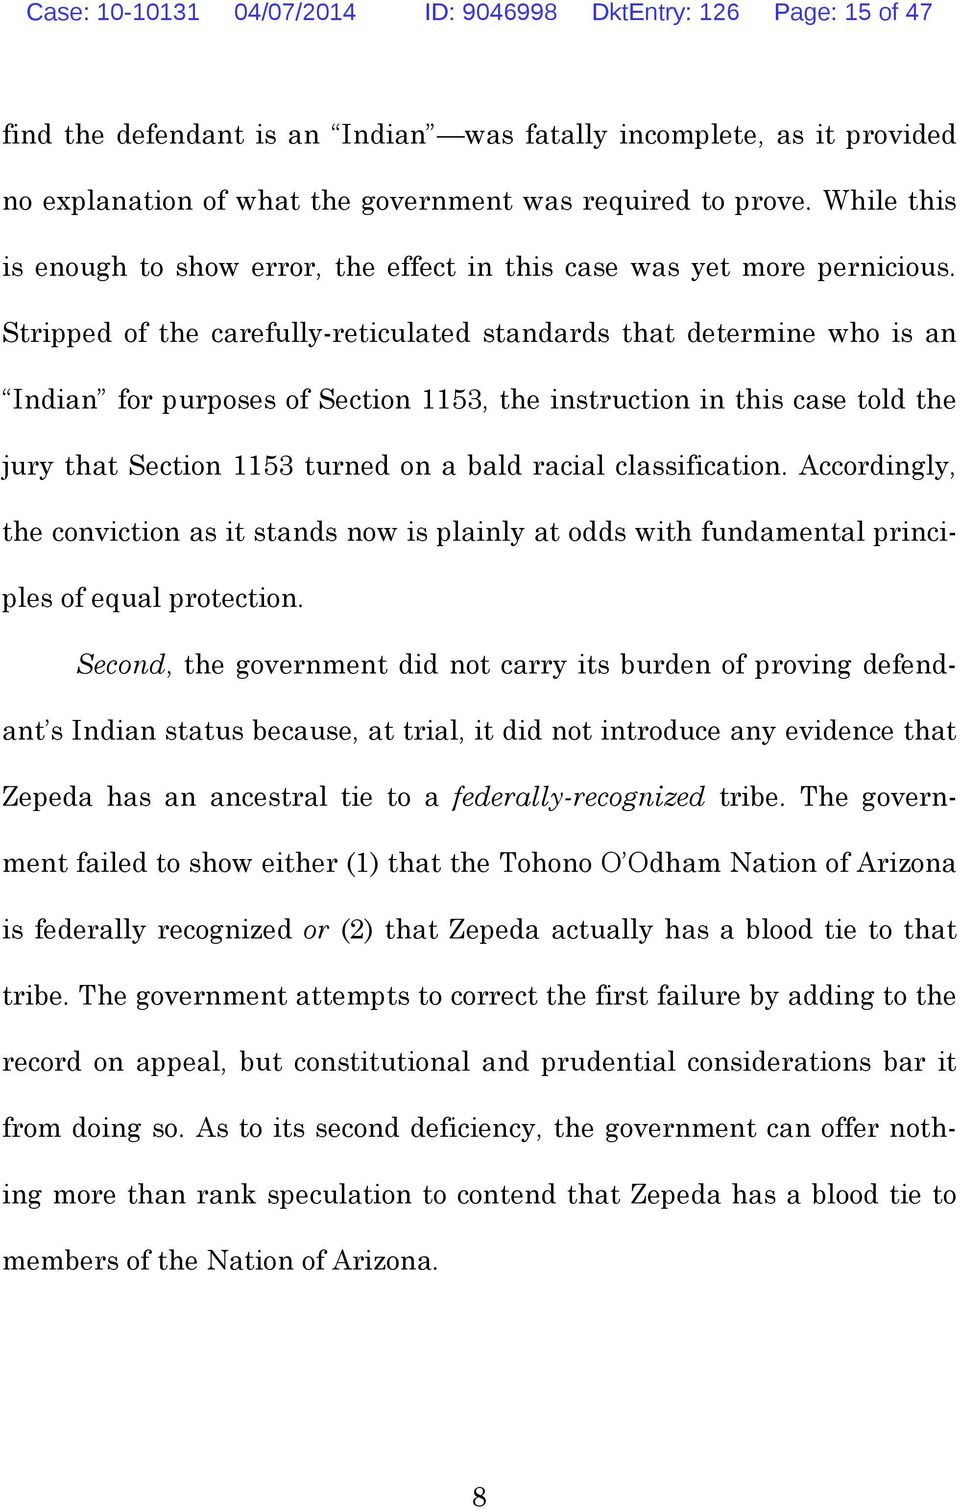 Stripped of the carefully-reticulated standards that determine who is an Indian for purposes of Section 1153, the instruction in this case told the jury that Section 1153 turned on a bald racial